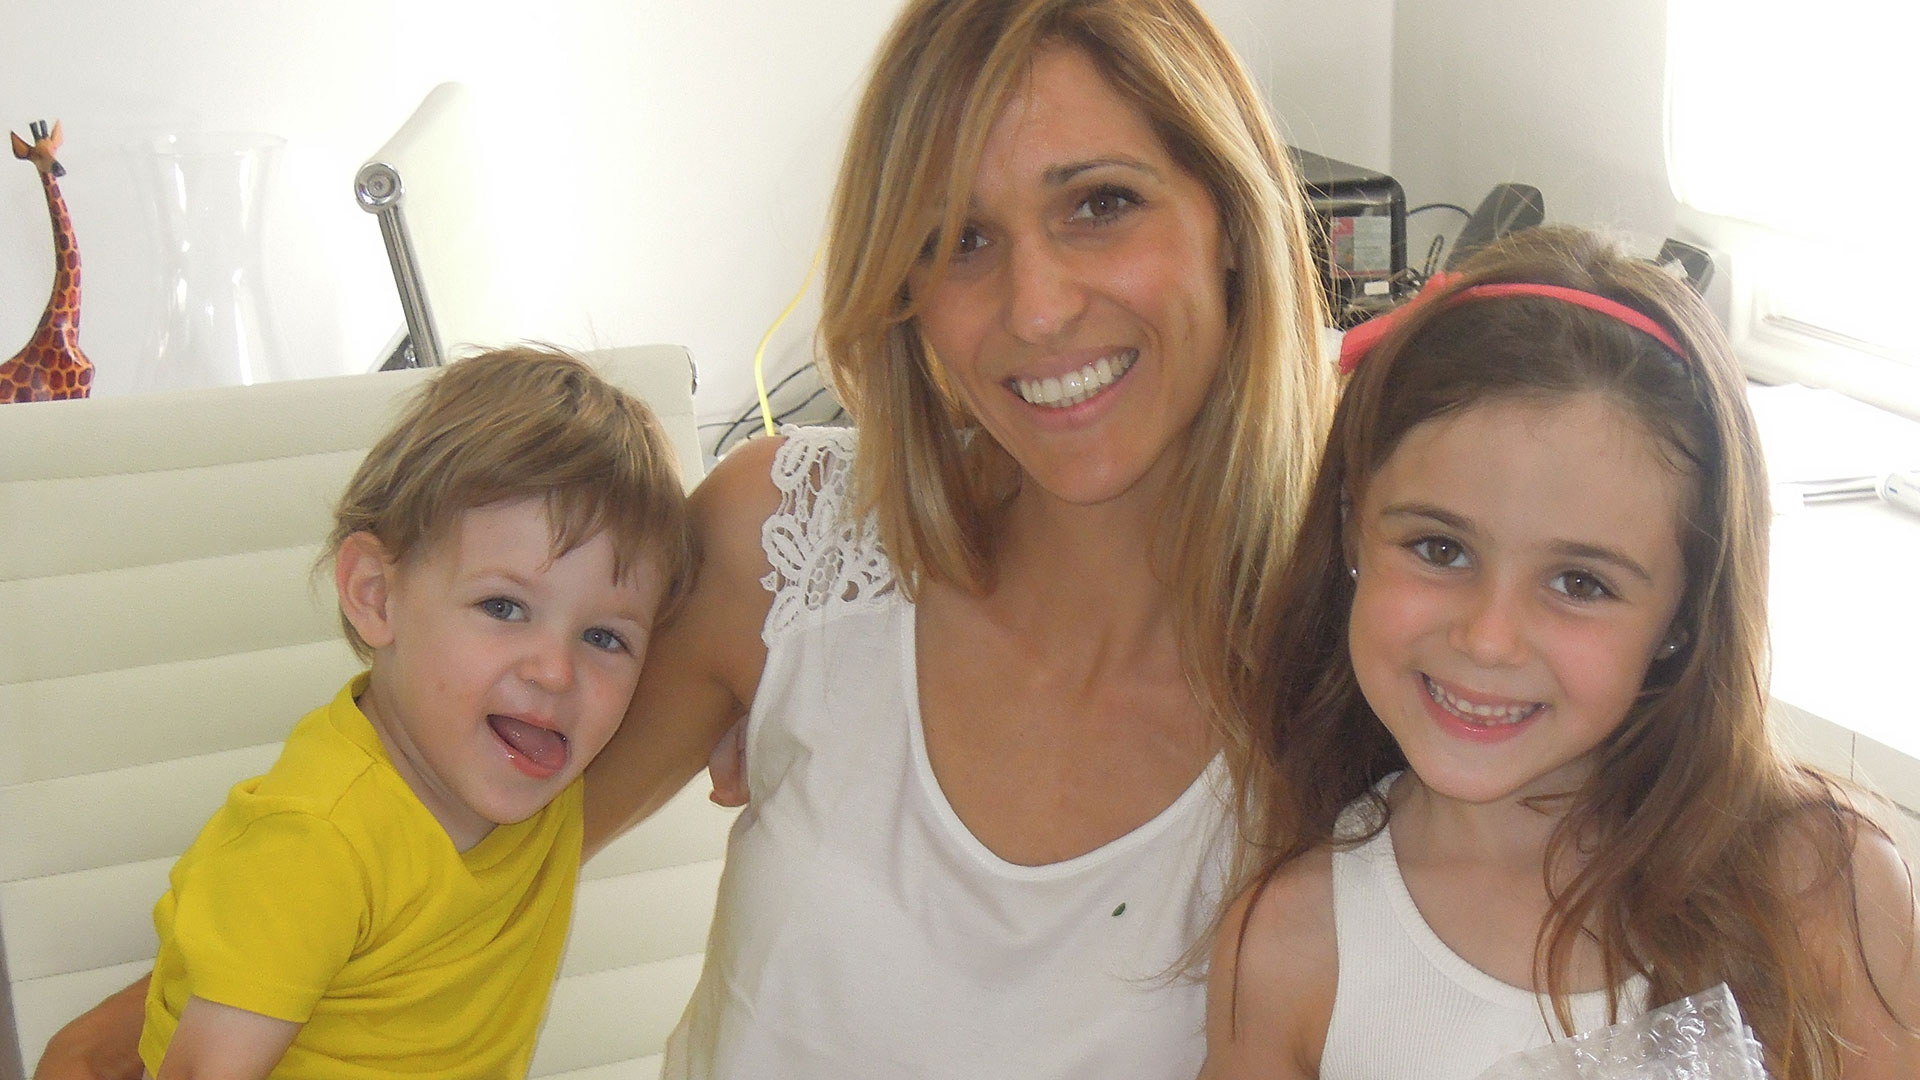 Jessica Claros with her children (boy and girl)